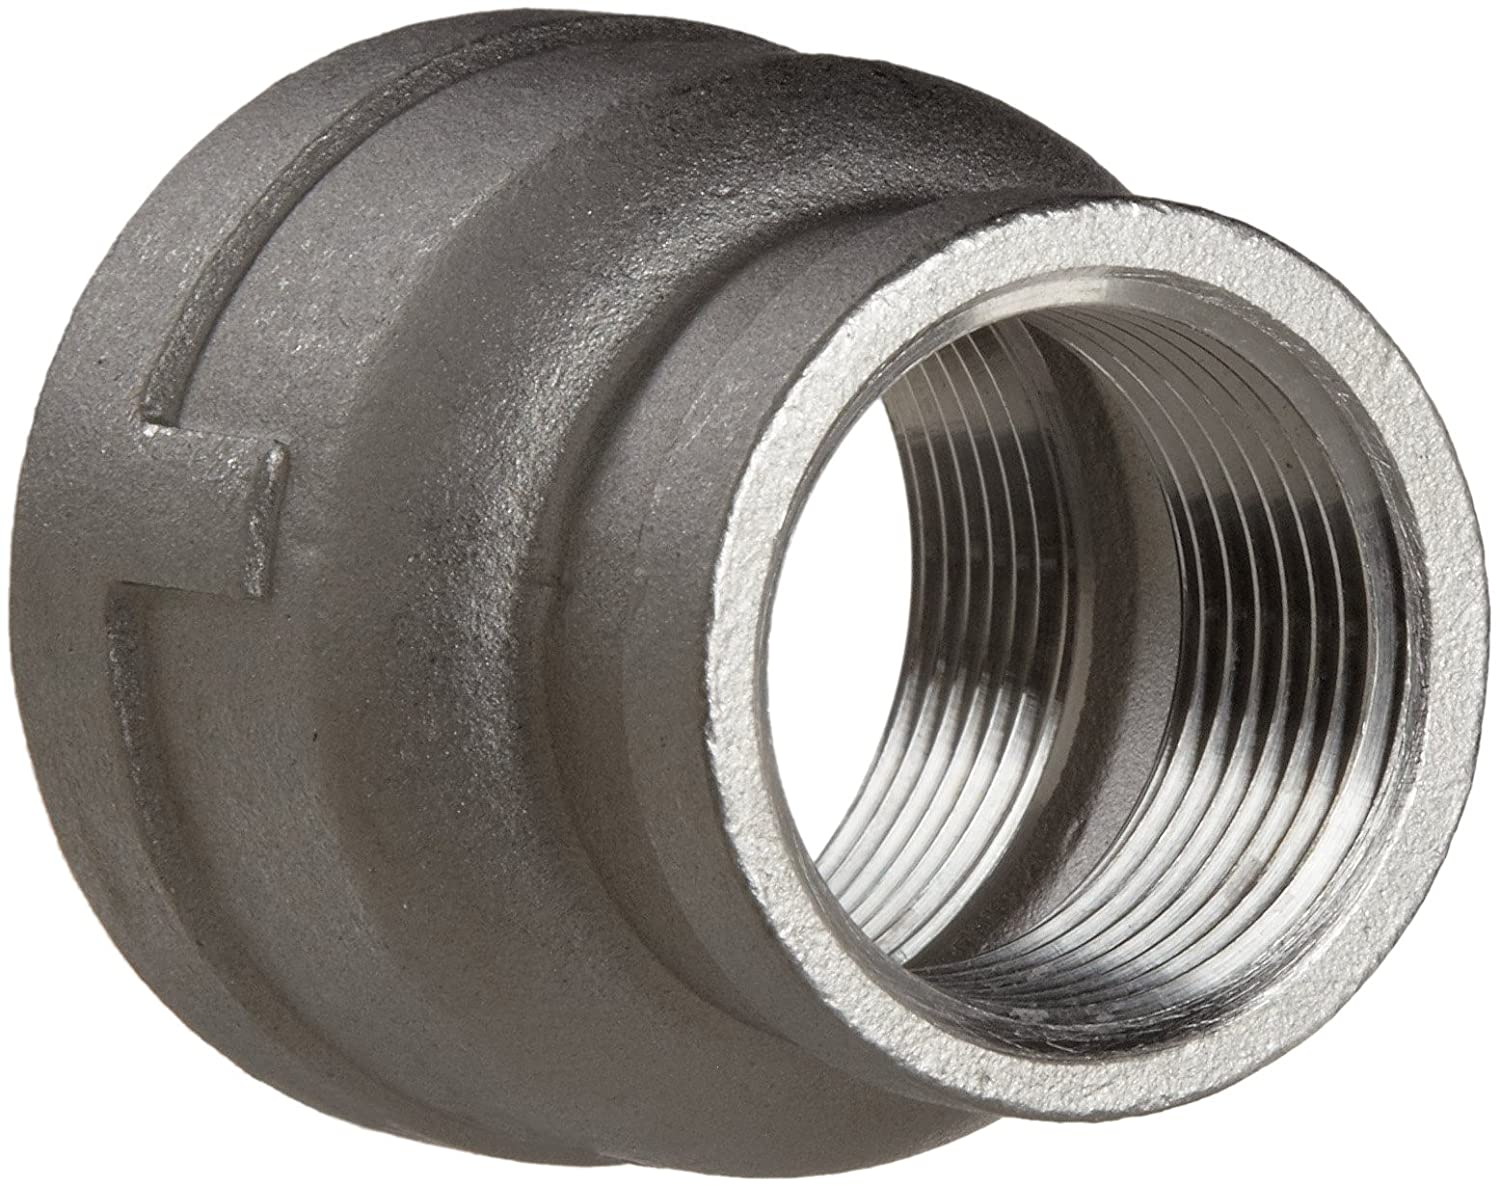 Reducing Coupling DN32DN25 Stainless Steel 304 Cast Pipe Fitting 1 X 1//2 NPT Female Class 150